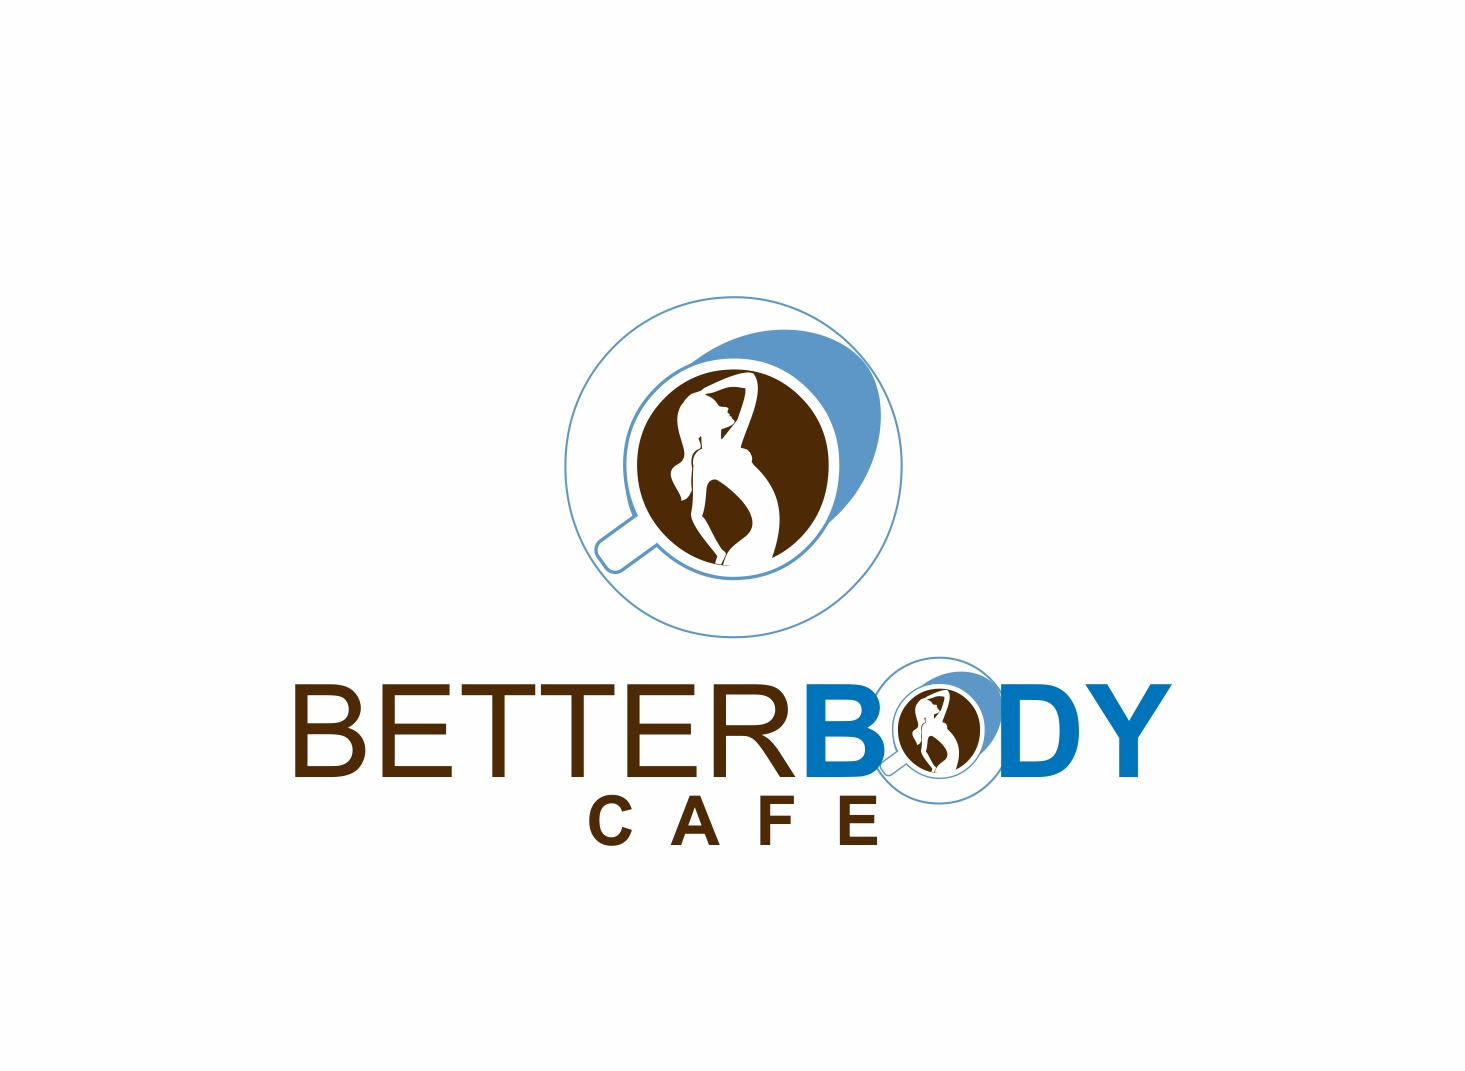 Logo Design by Zdravko Krulj - Entry No. 68 in the Logo Design Contest New Logo Design for Better Body Cafe.